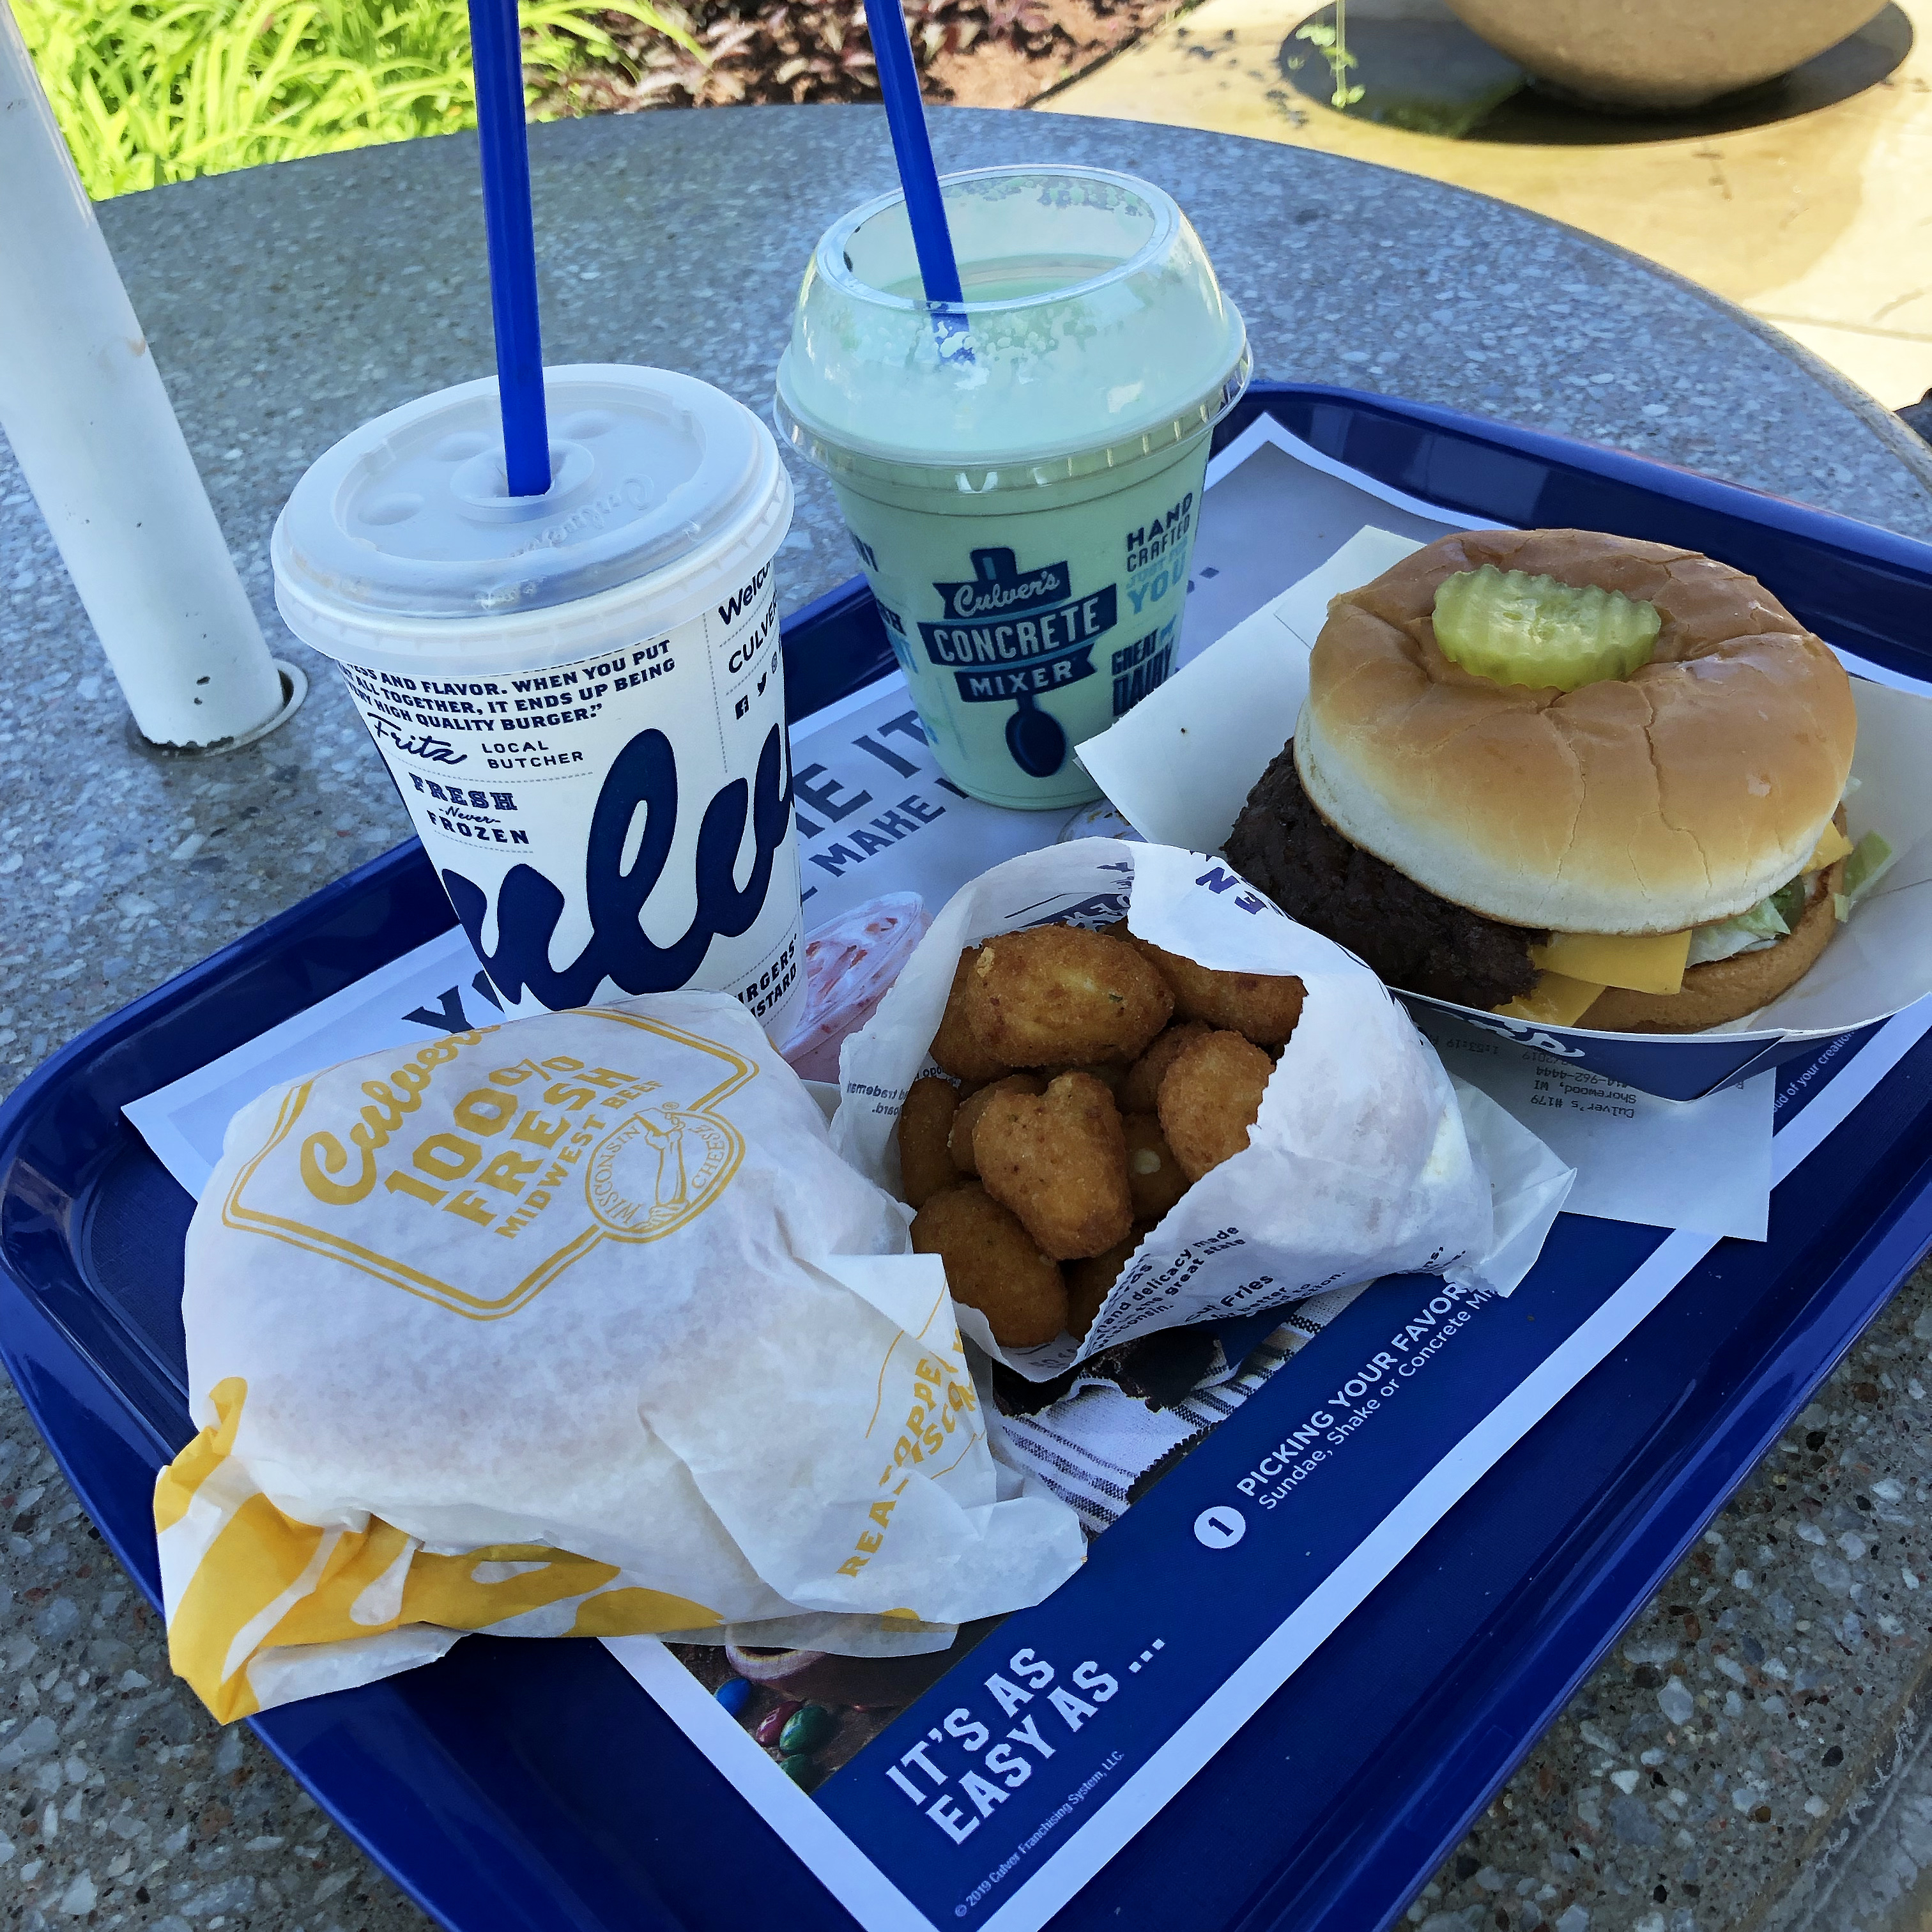 Butter Burgers and Cheese Curds from Culver's, the best fast food chain in the world